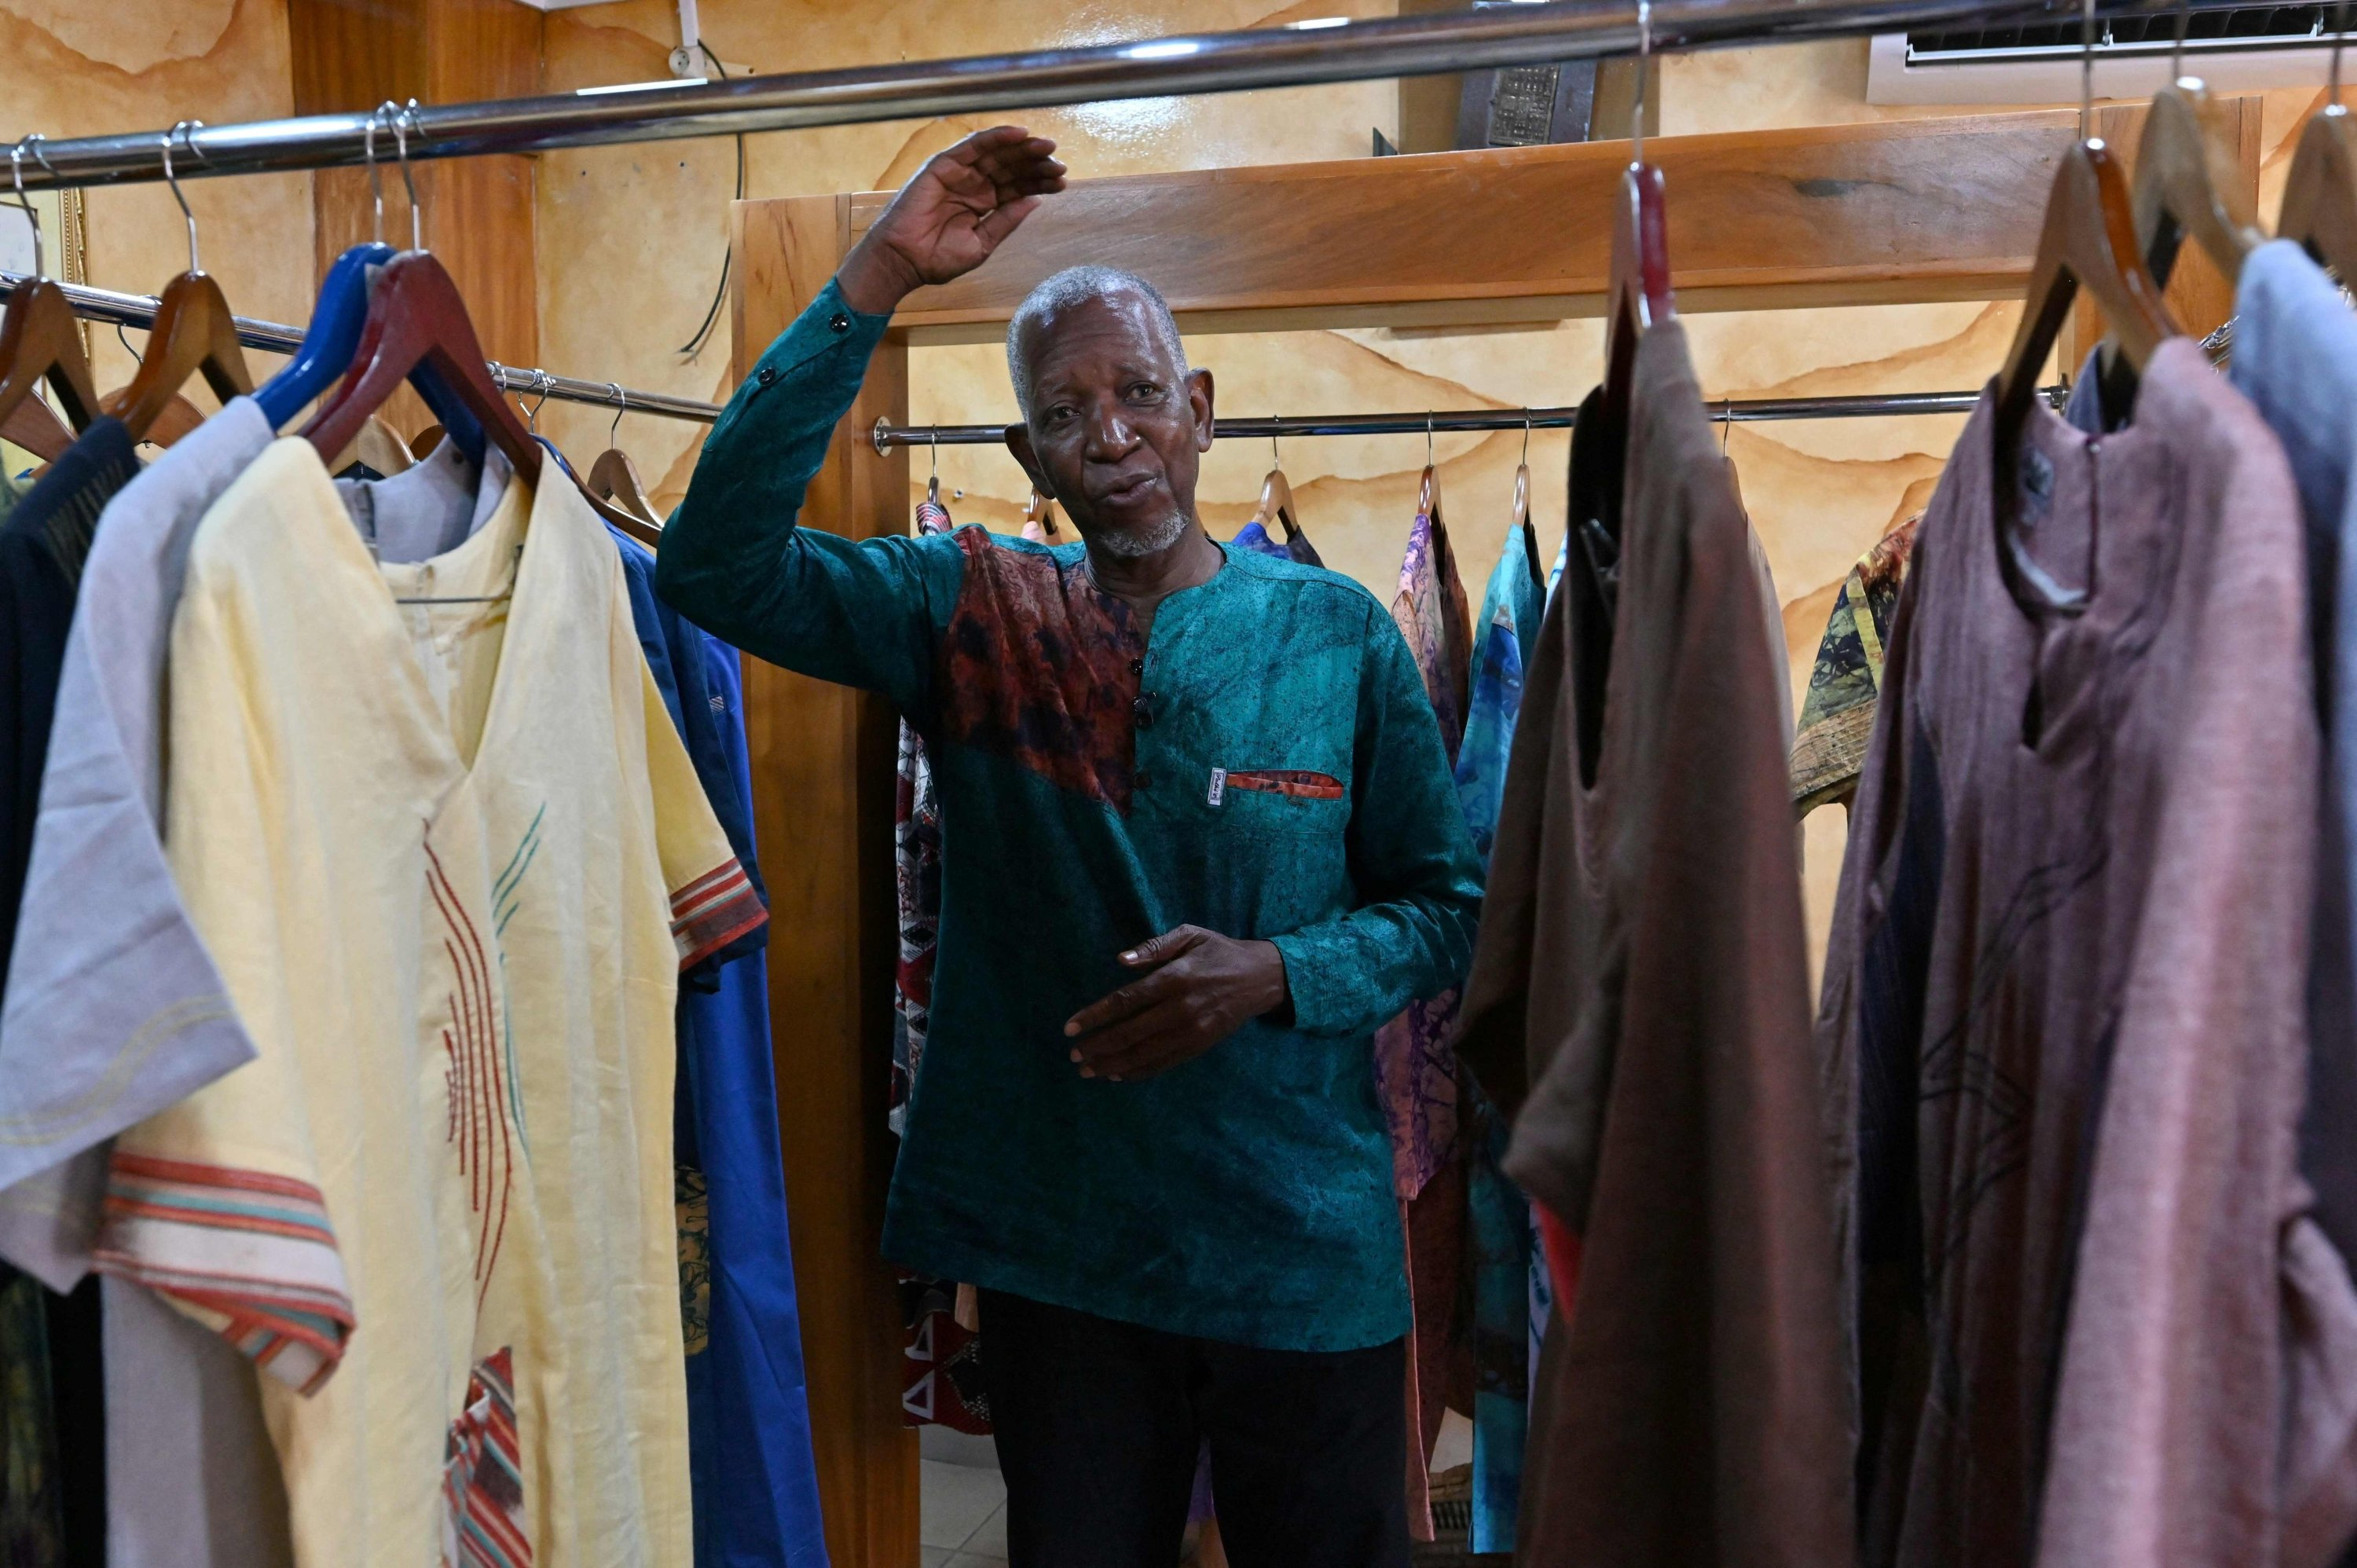 Fashion desiner Pathe Ouedraogo known as Pathé'O pose in his store in Abidjan, Ivory Coast, May 26, 2021. (AFP Photo)